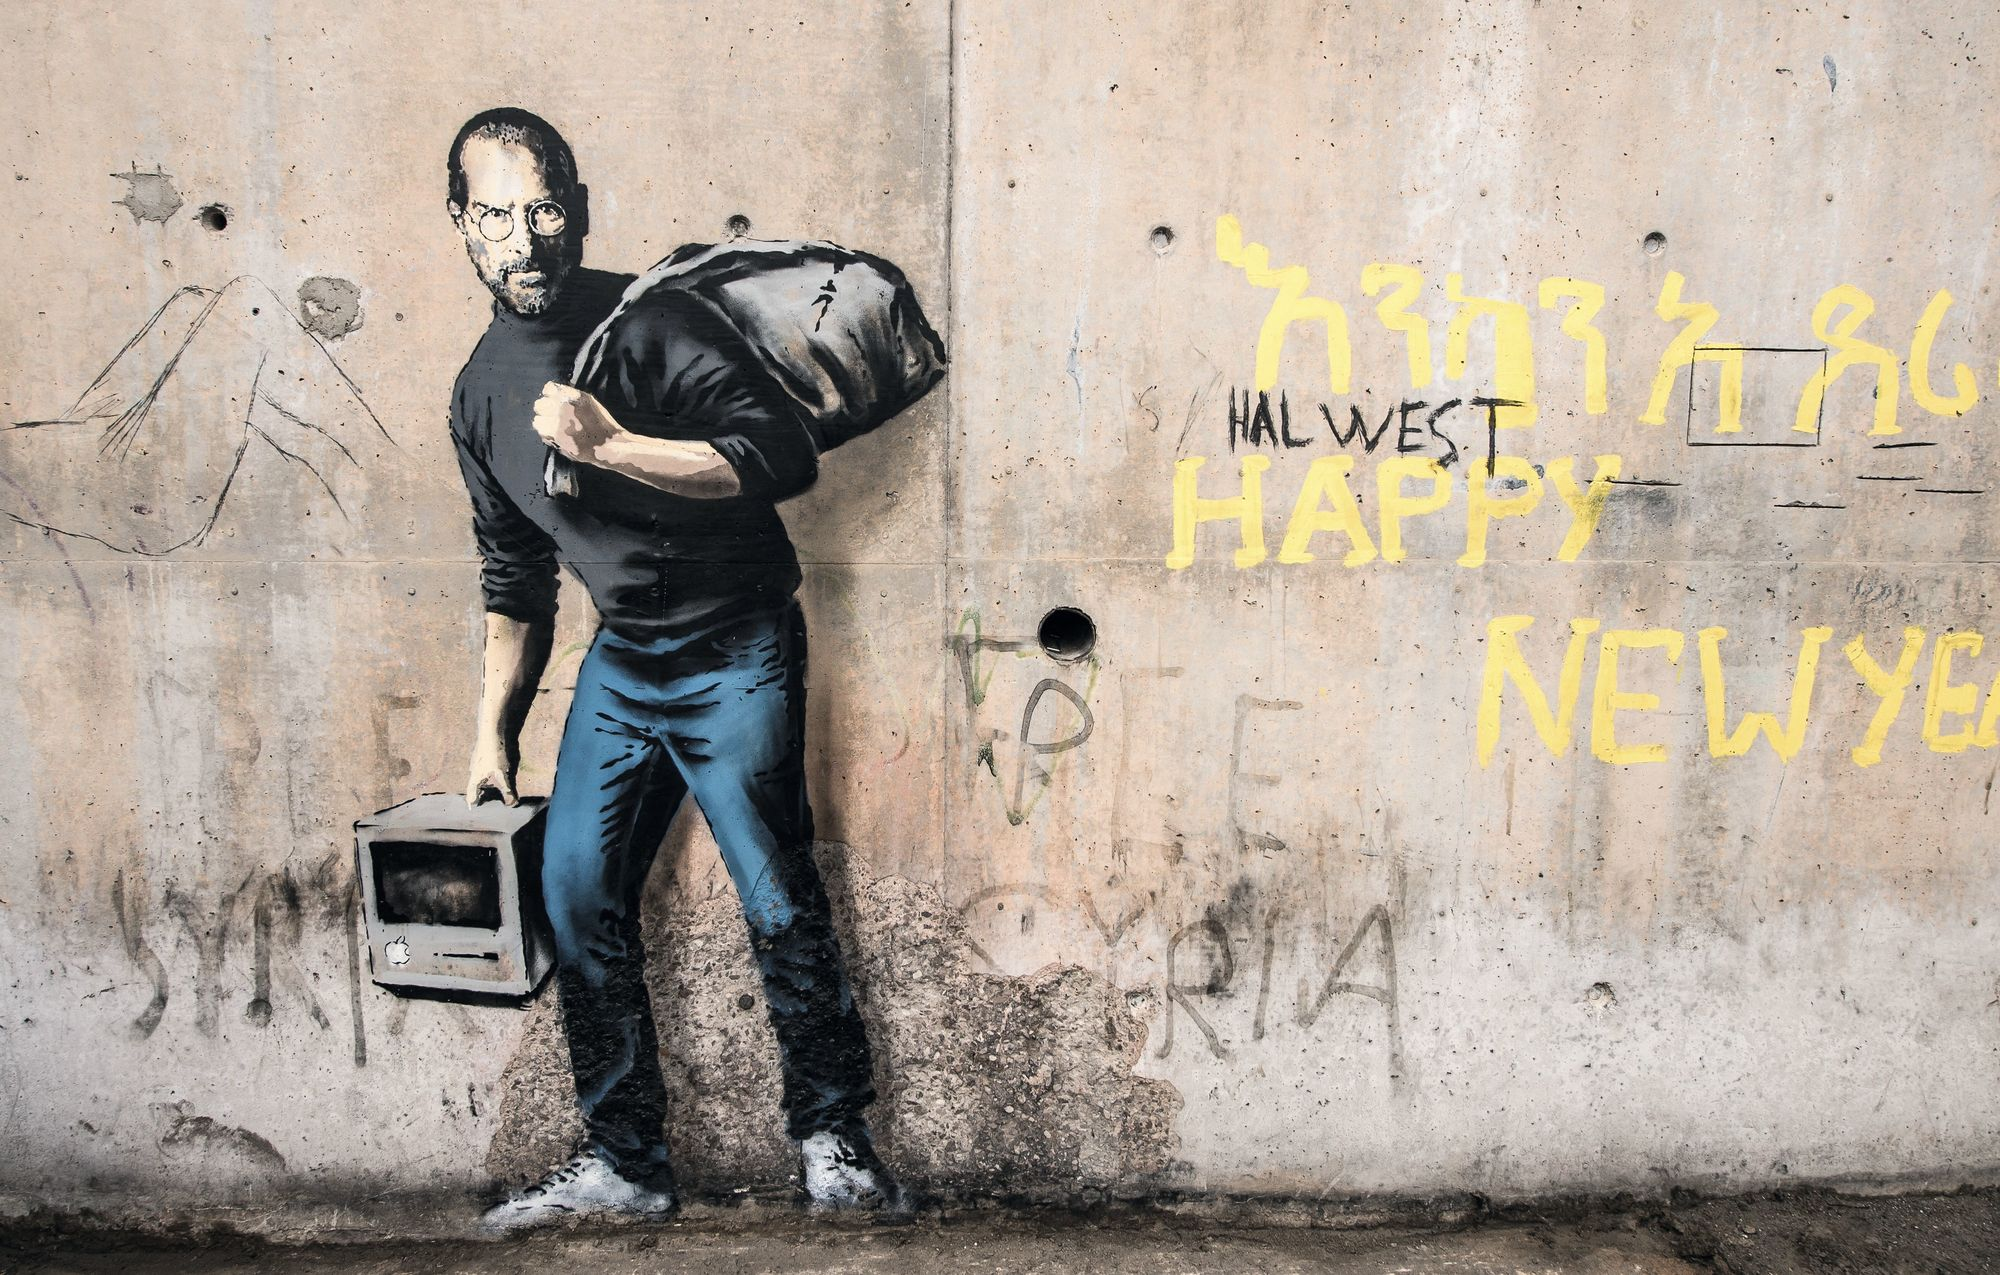 A mural by Banksy in Calais